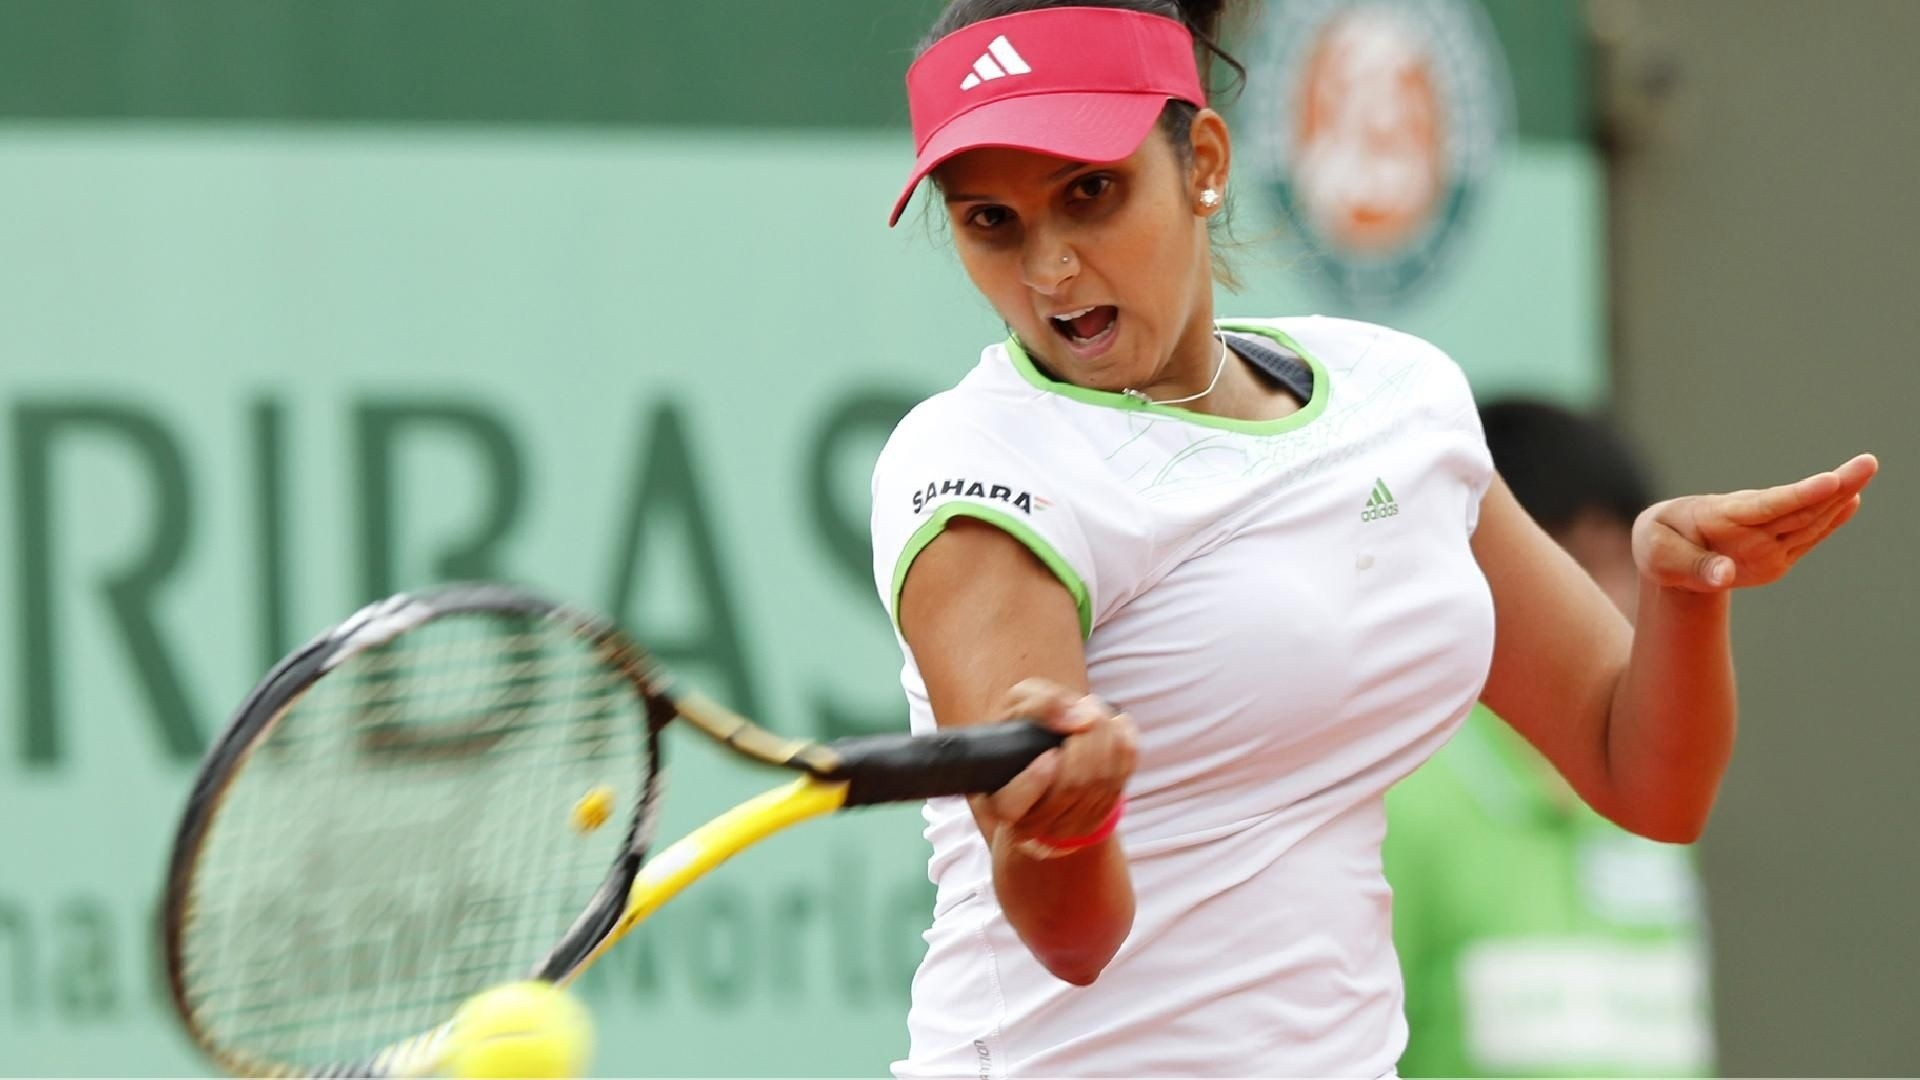 Sania Mirza Wallpapers And Backgrounds